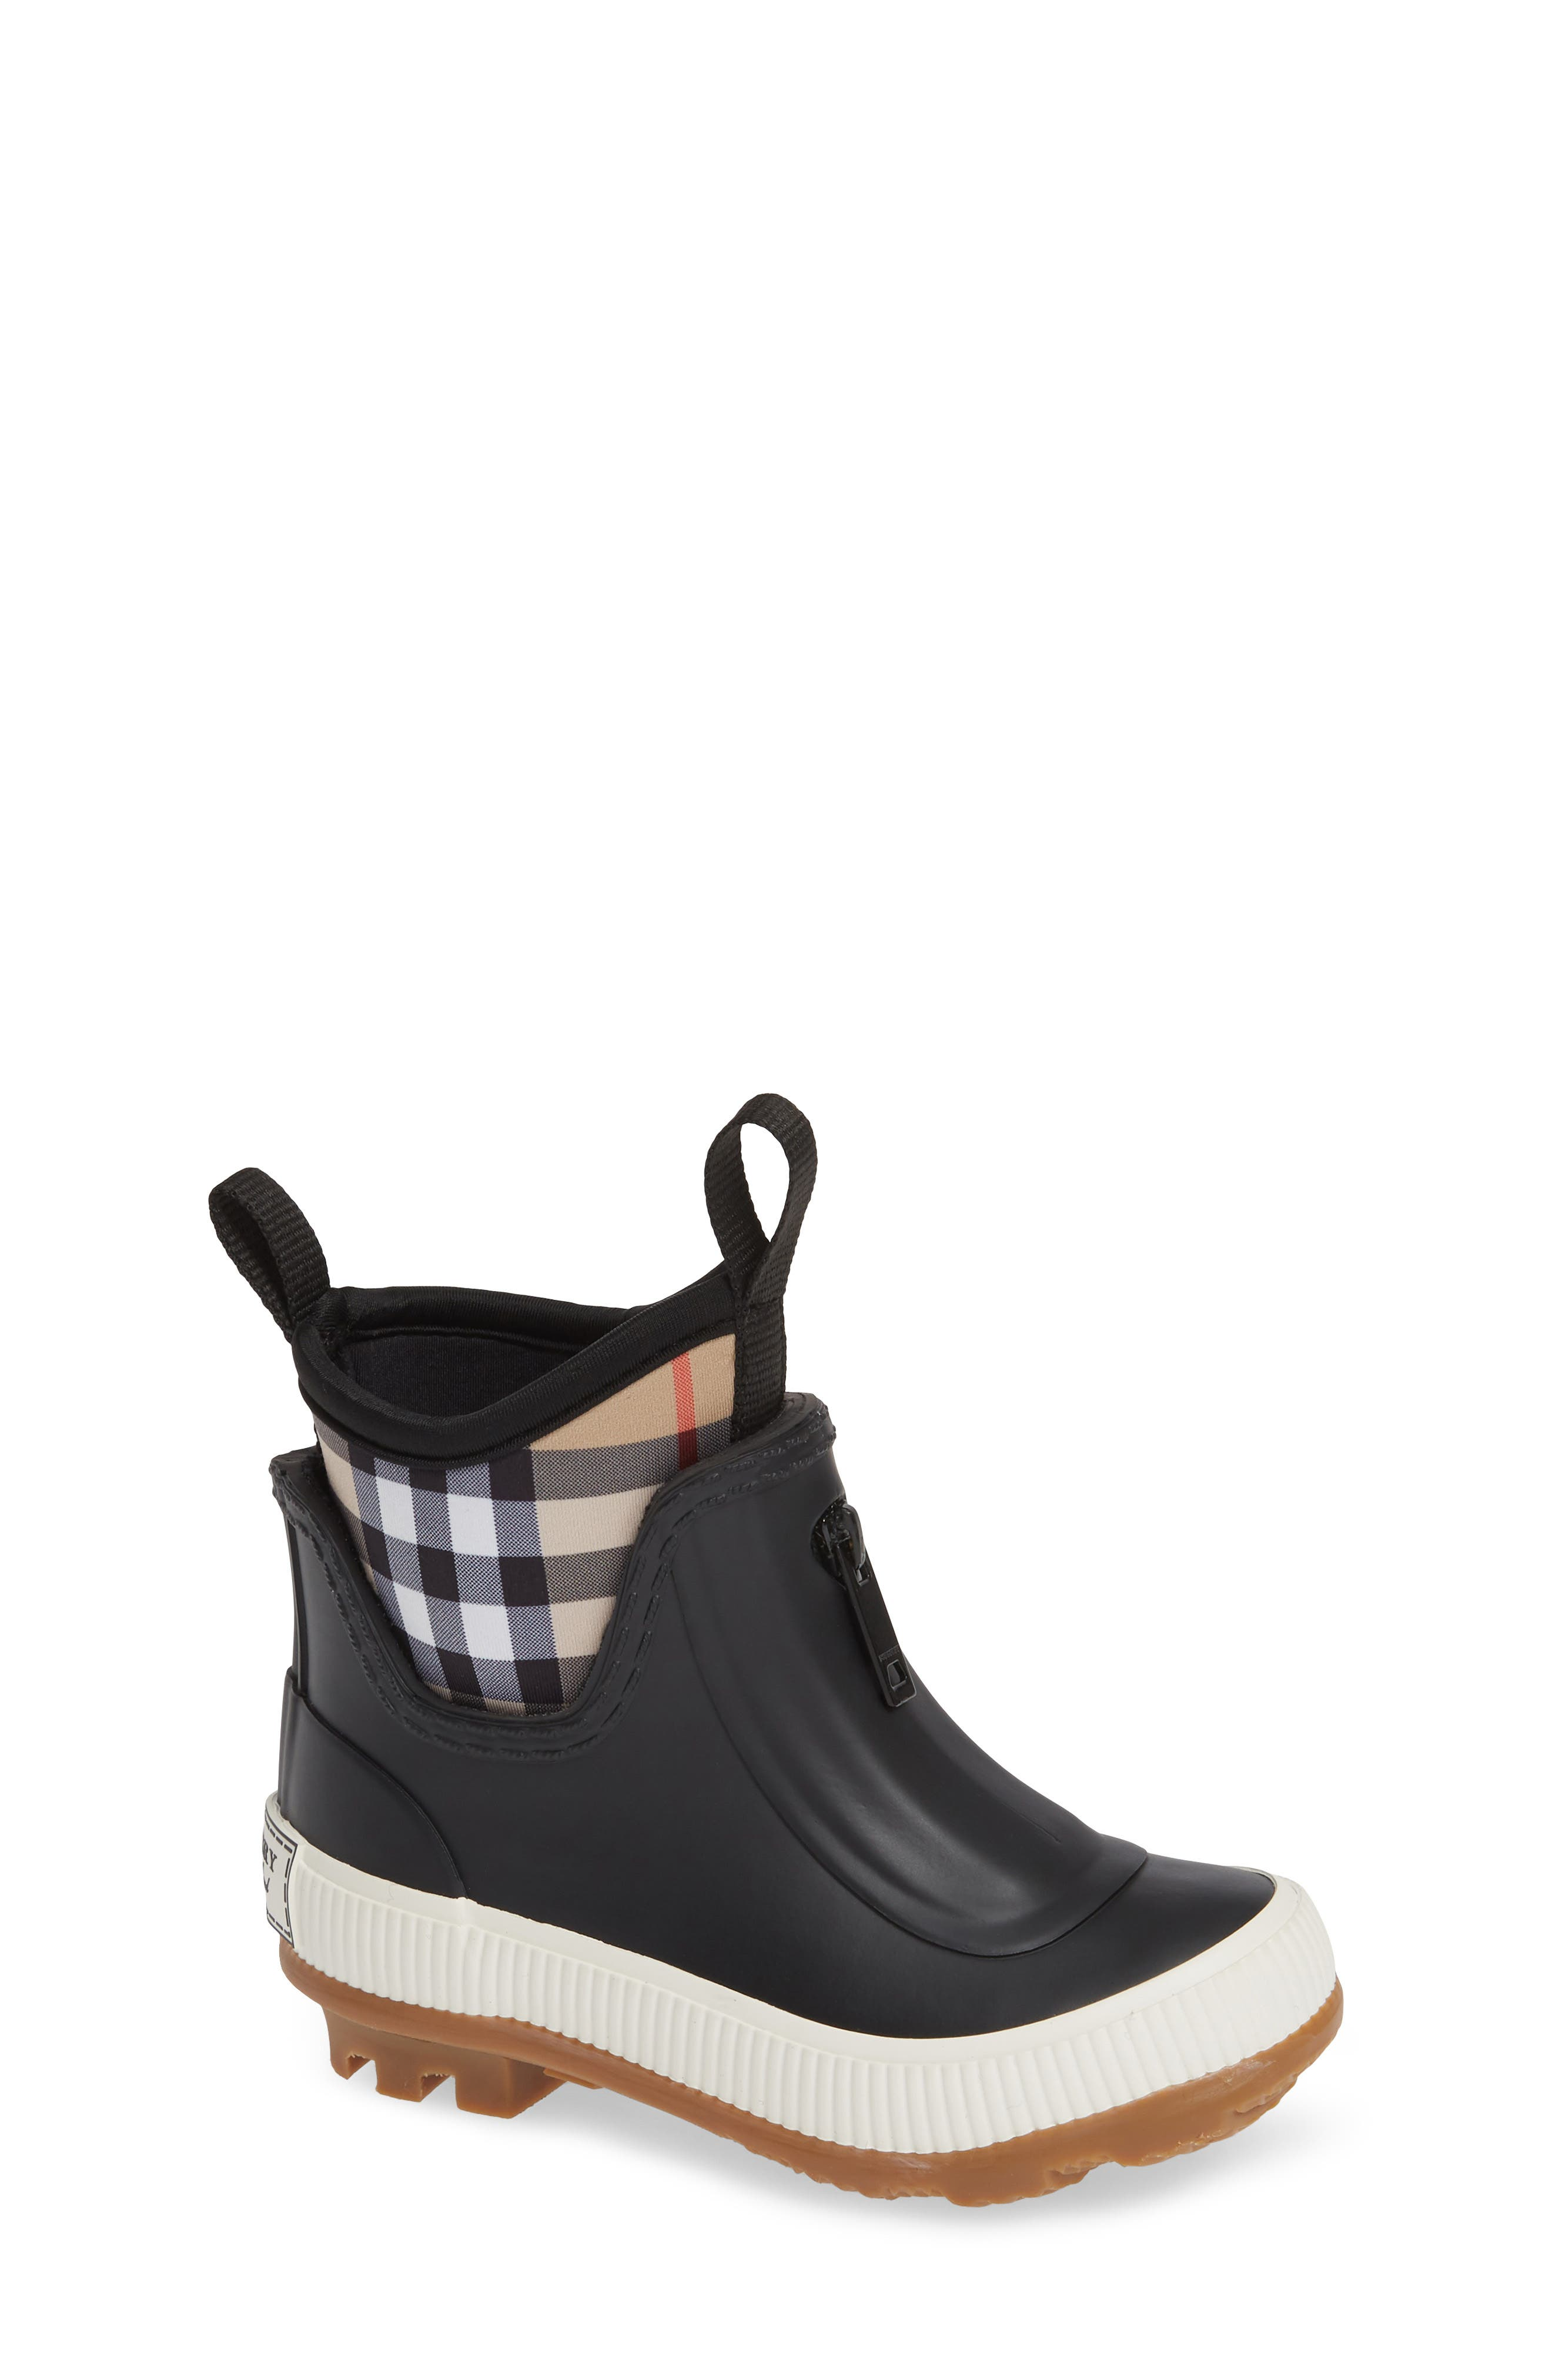 BURBERRY,                             Flinton Waterproof Rain Boot,                             Main thumbnail 1, color,                             BLACK